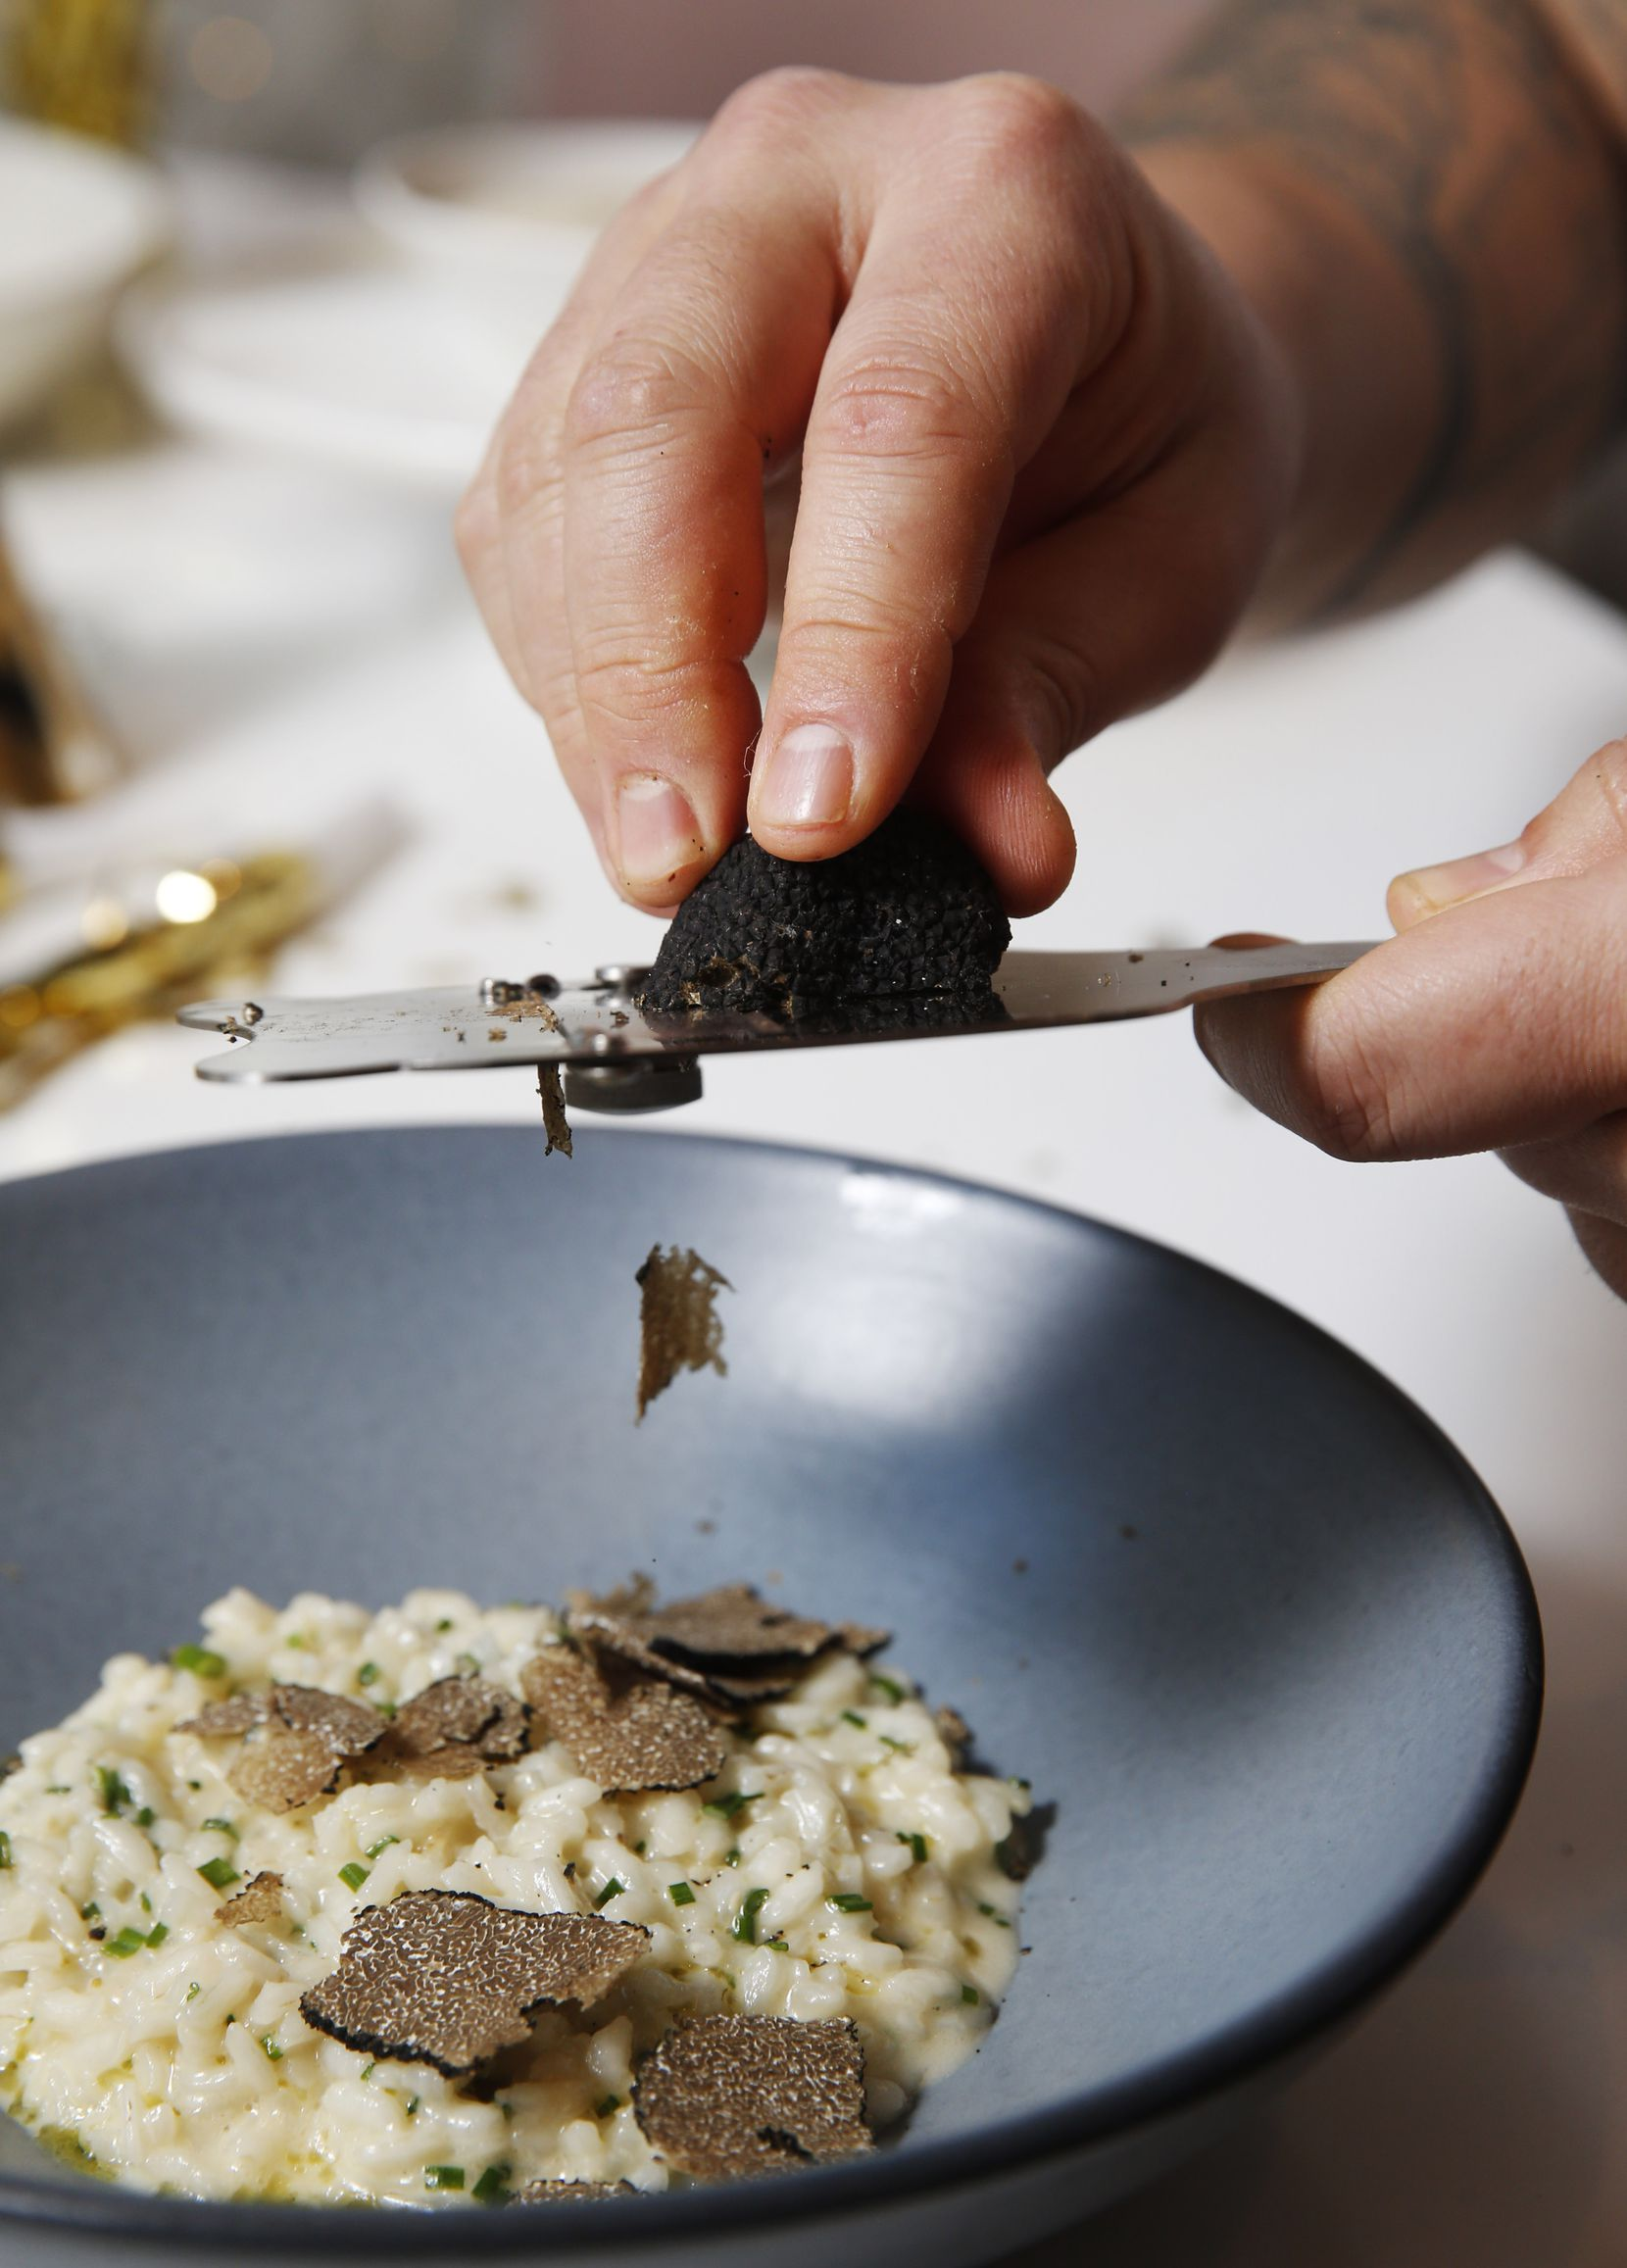 Winter black truffle risotto is one of the add-on courses for New Year's Eve dinner from Sloane's Corner in Dallas.